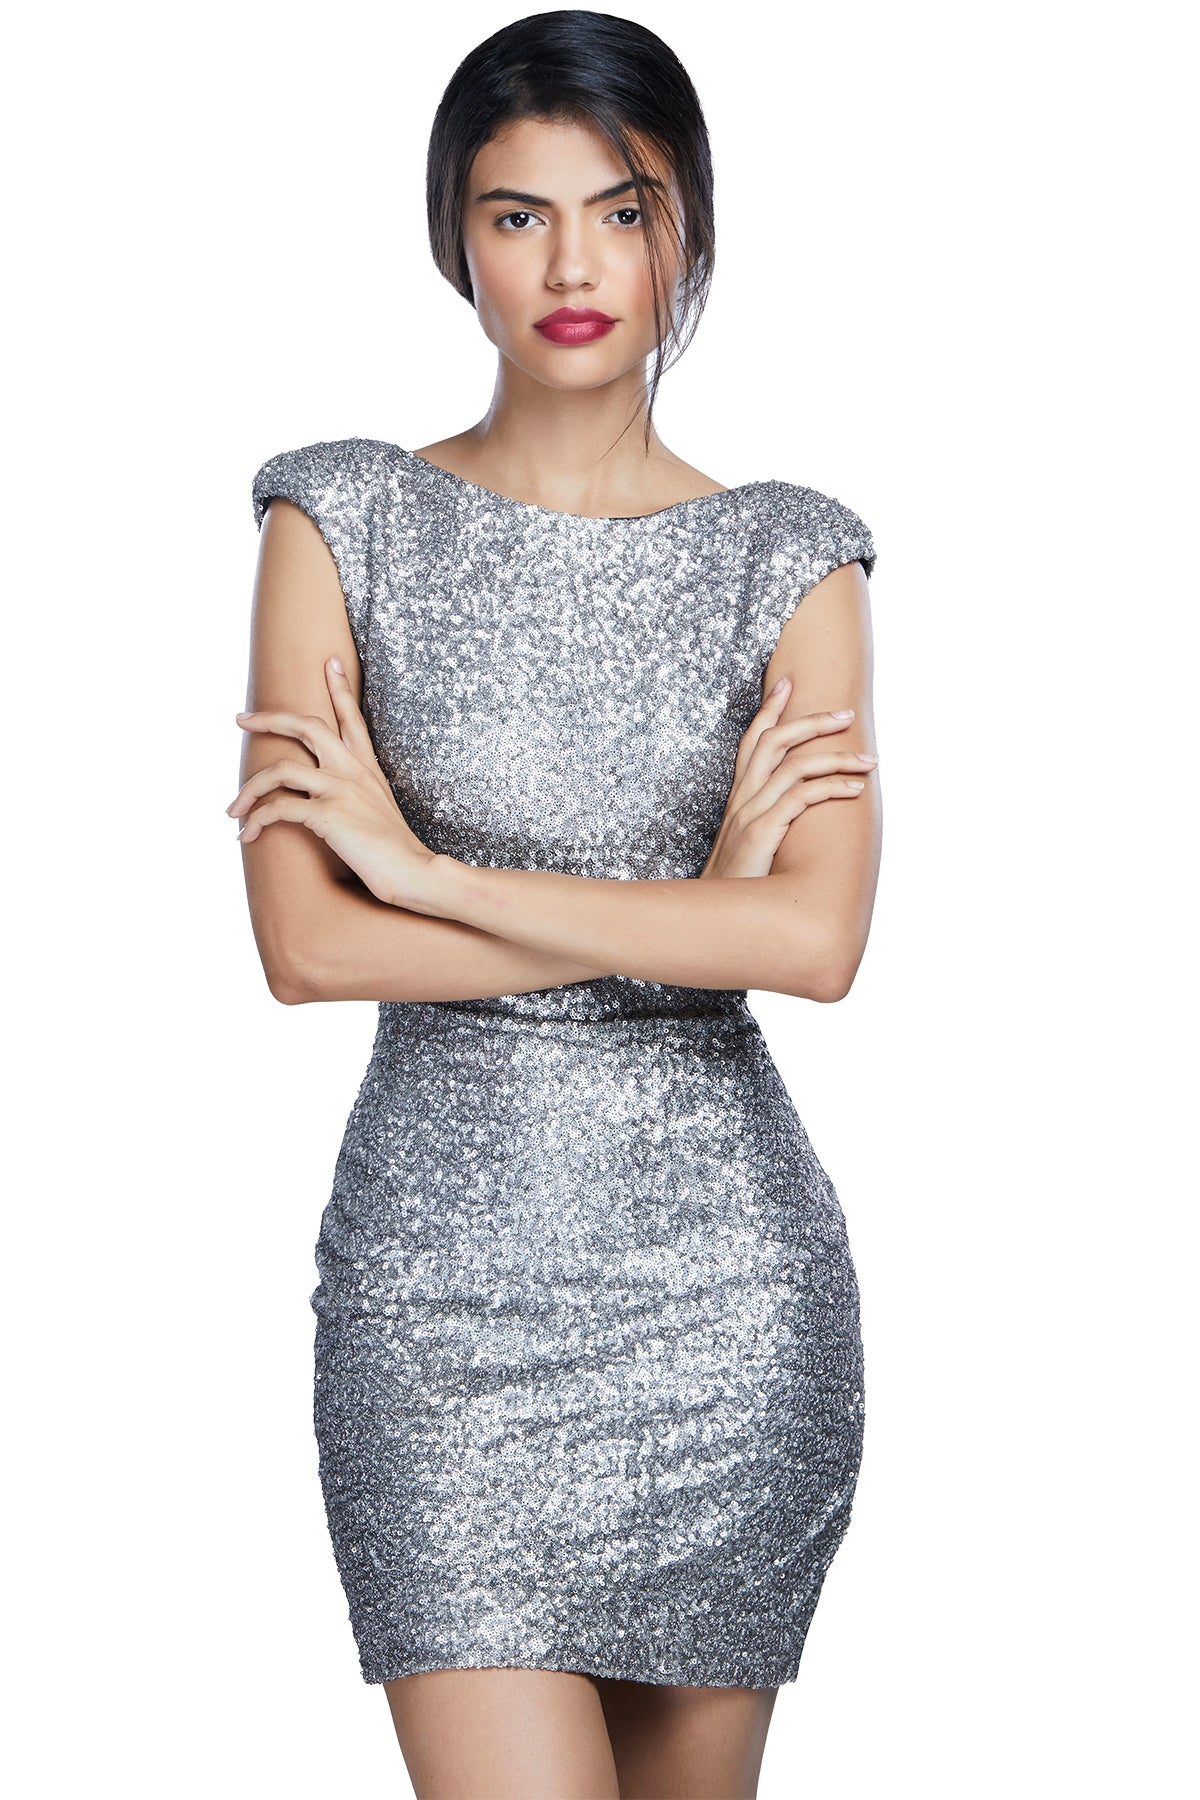 Cause we get bitter without that glitter! Dive into the midst of glitz in this complete sequined figure-hugging dress with cap sleeves.